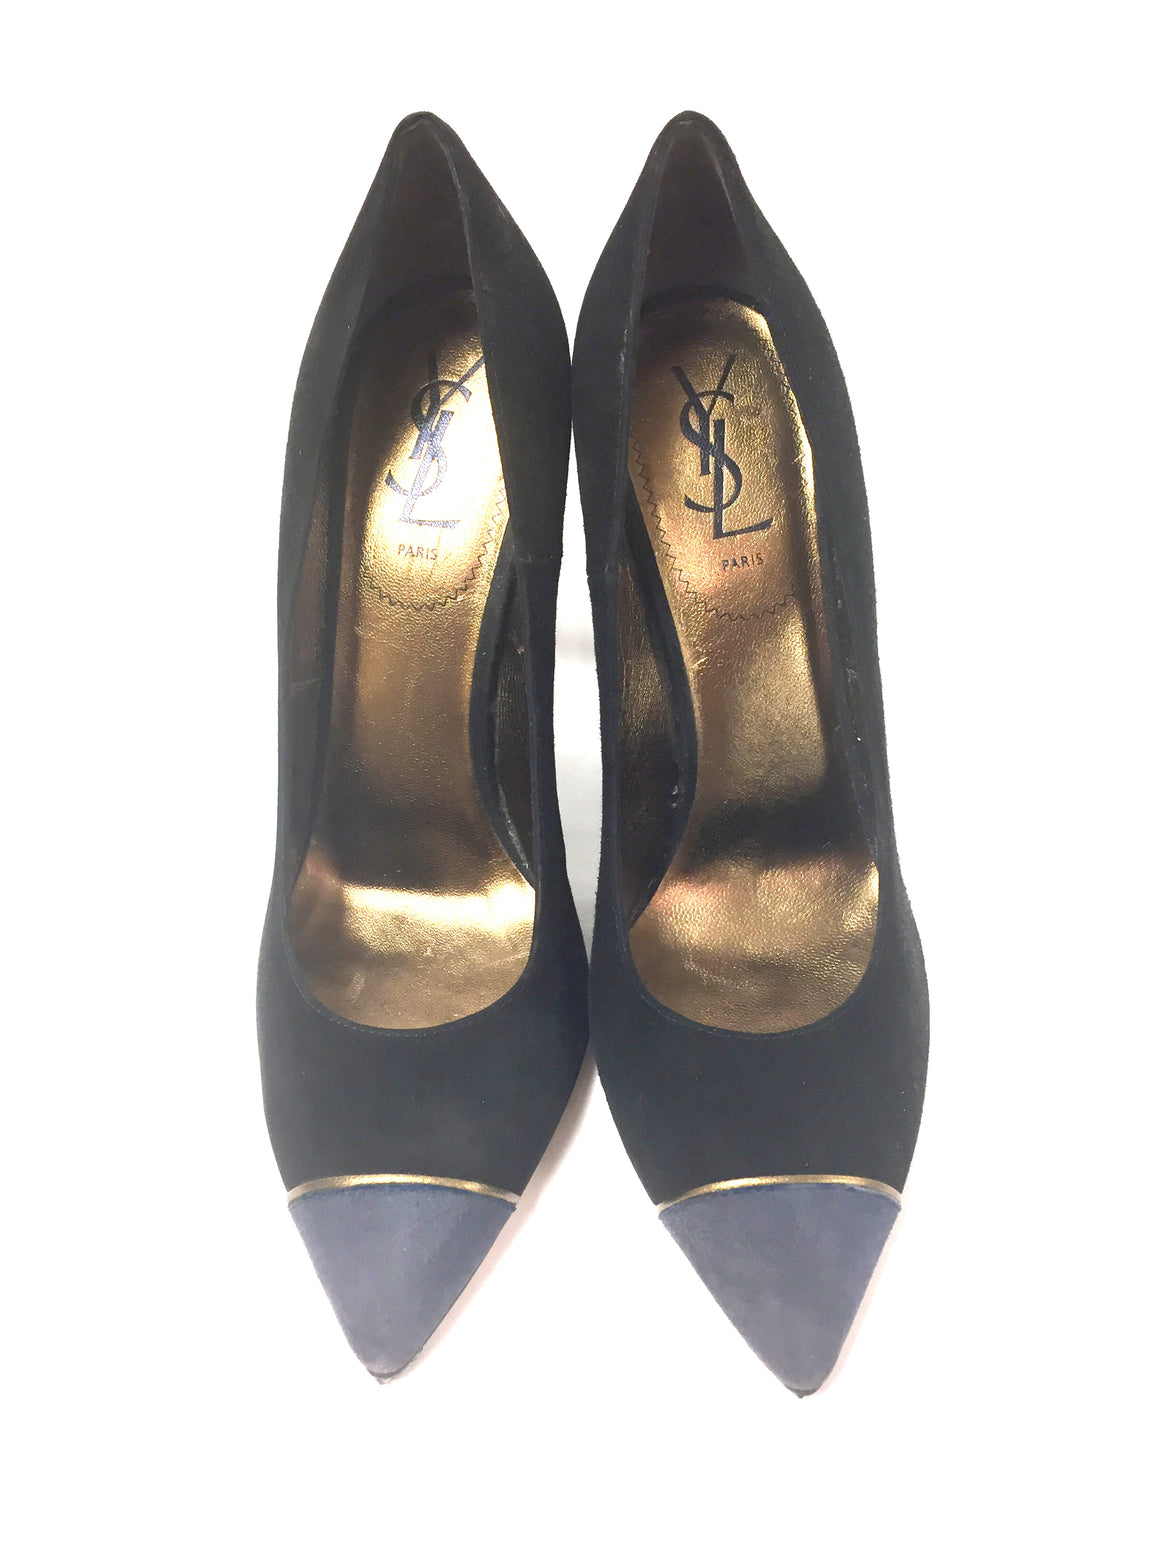 YVES ST. LAURENT - YSL  Vintage - New Black Suede Gray Cap-Toe Hi-Heel Pumps  Size: EU 38.5  / US 8